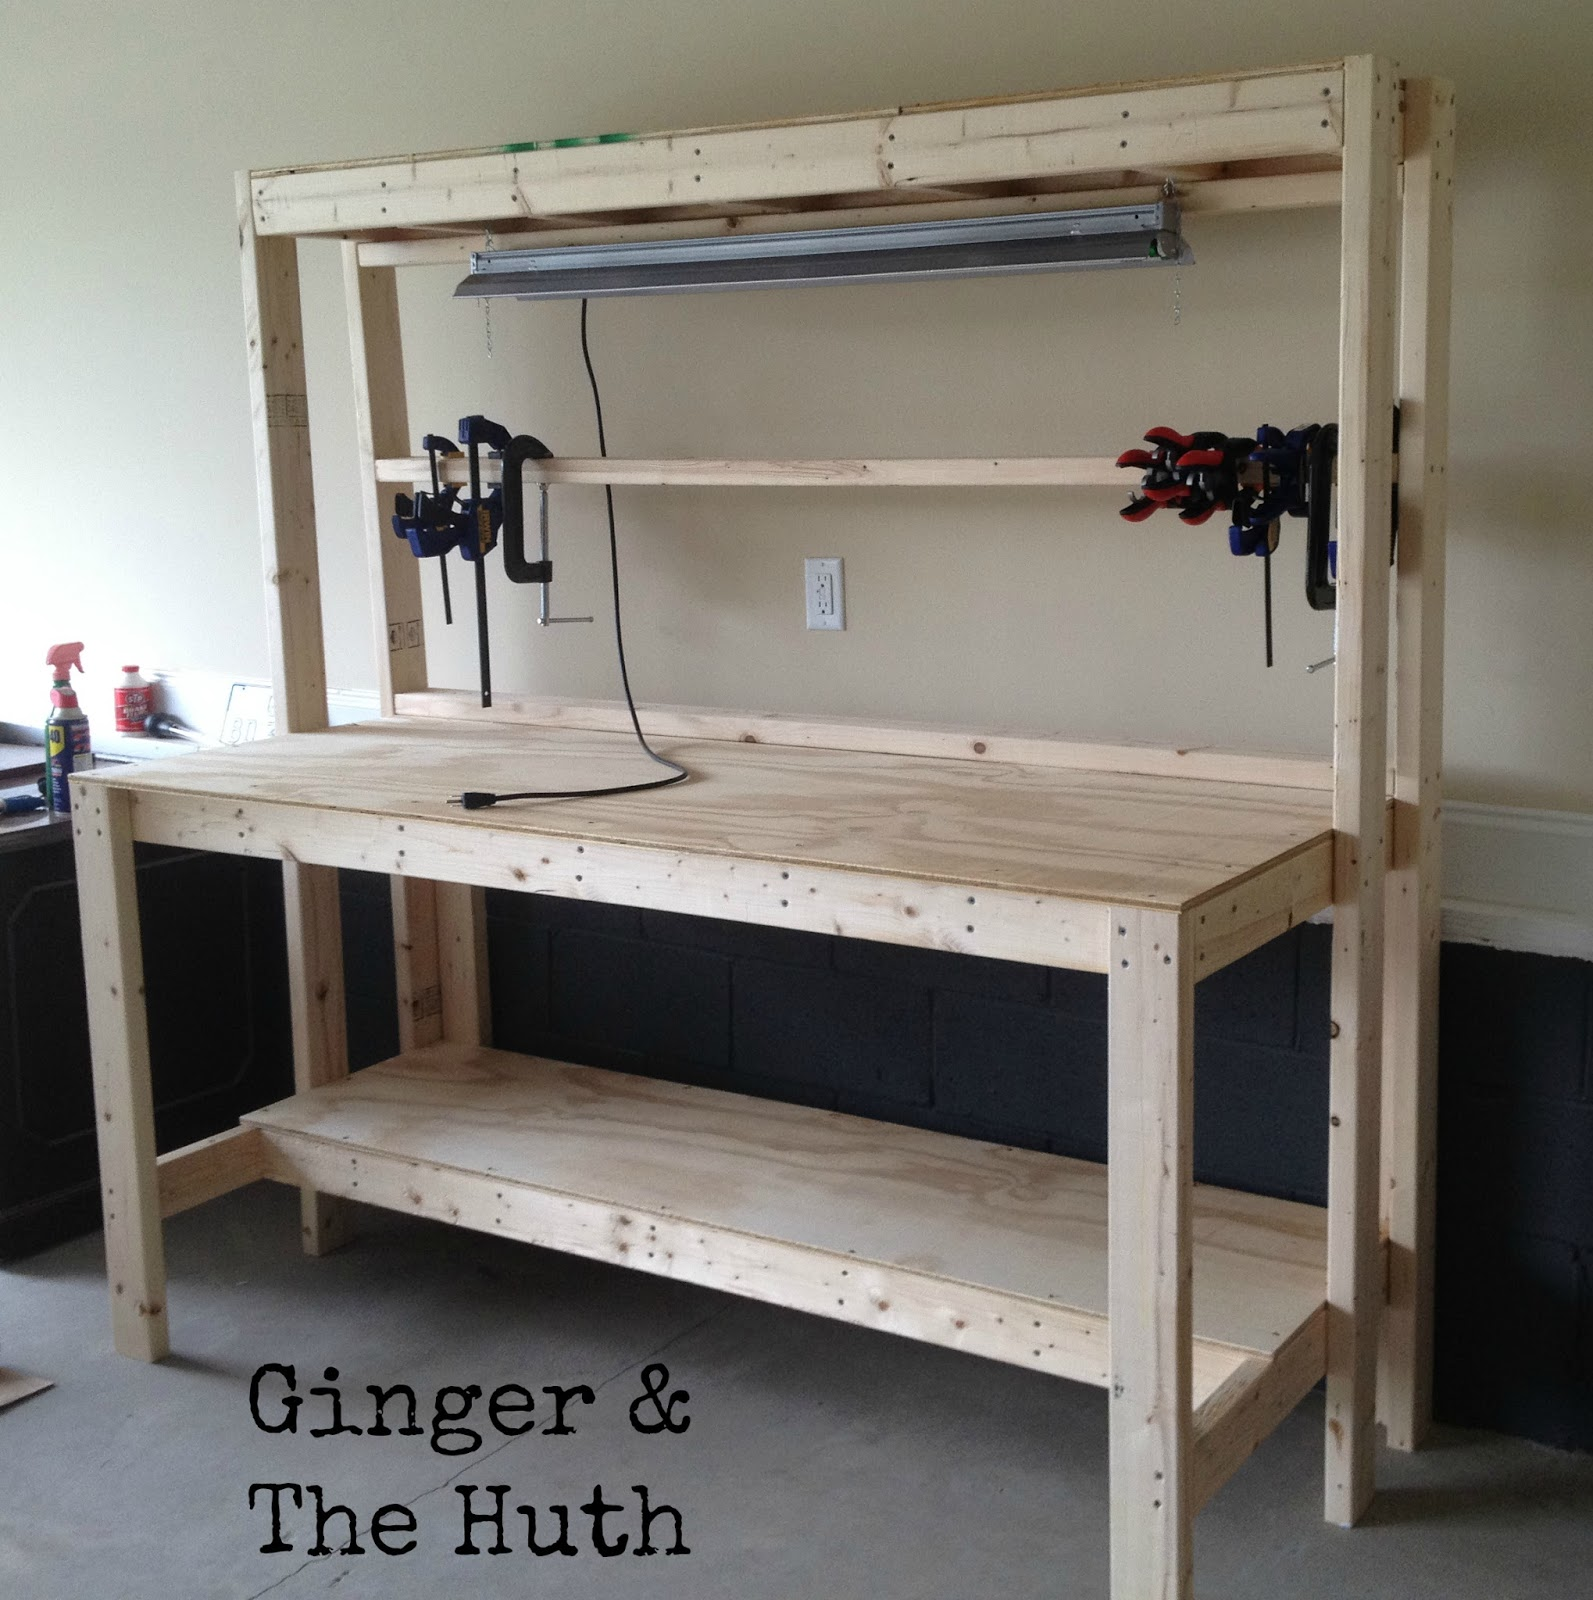 diy small workshop bench plans download square wood picnic table plans